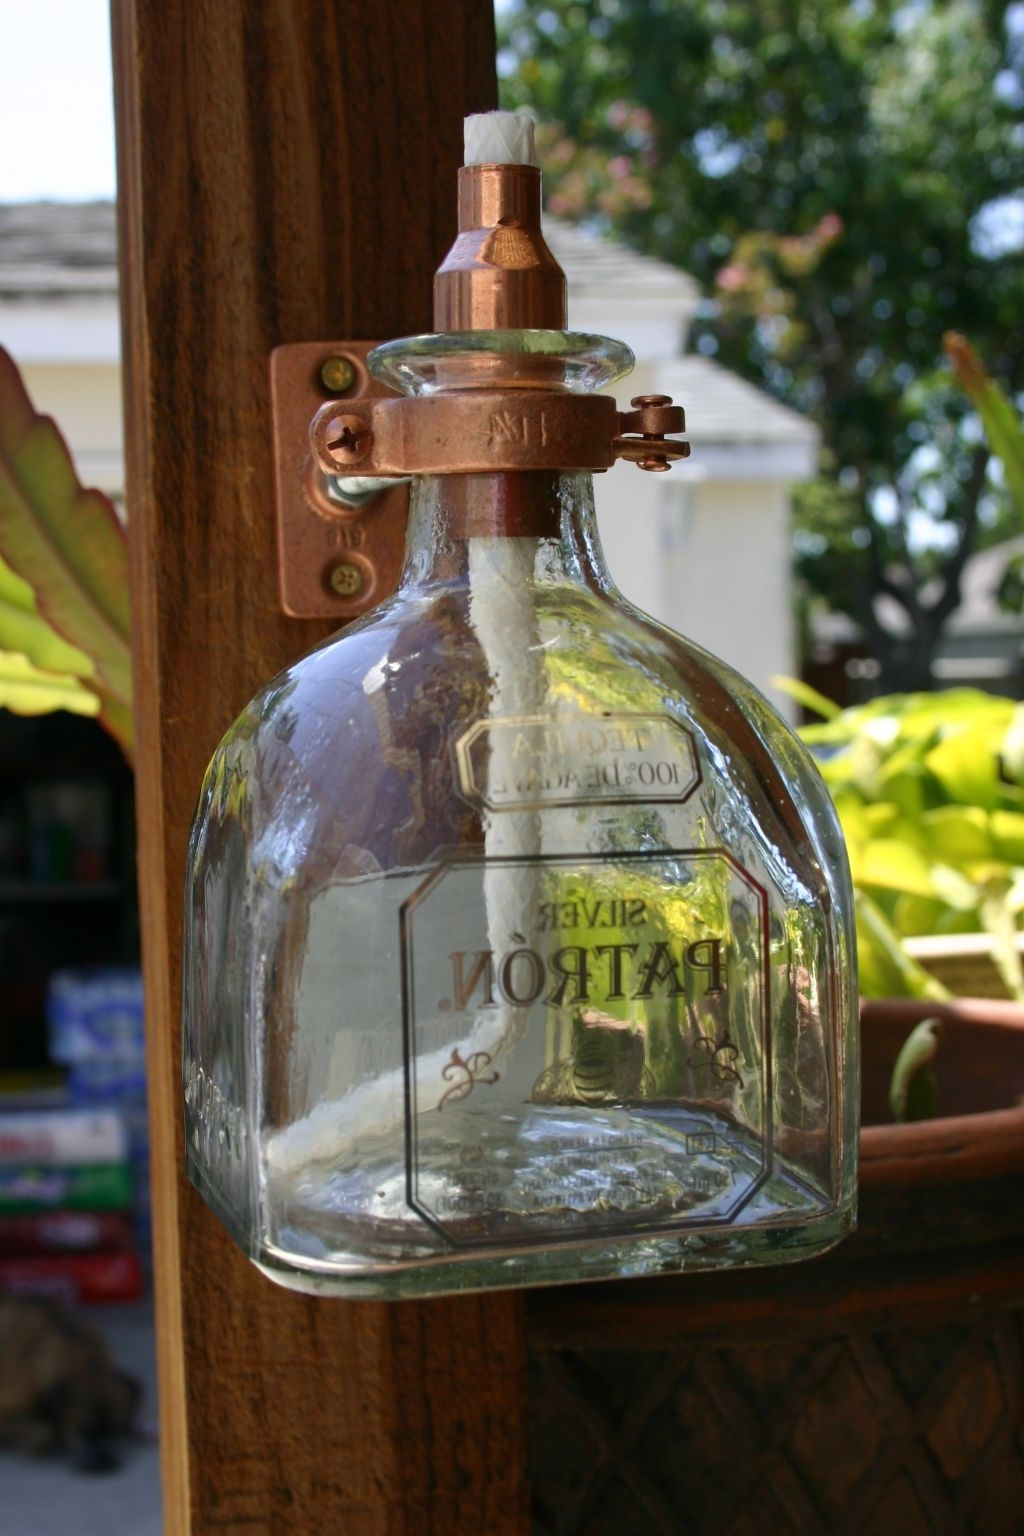 Outdoor Oil Lanterns Regarding Latest 2 Patron Tequila Tiki Torch / Oil Lamps Including Bottle & Hardware (View 4 of 20)